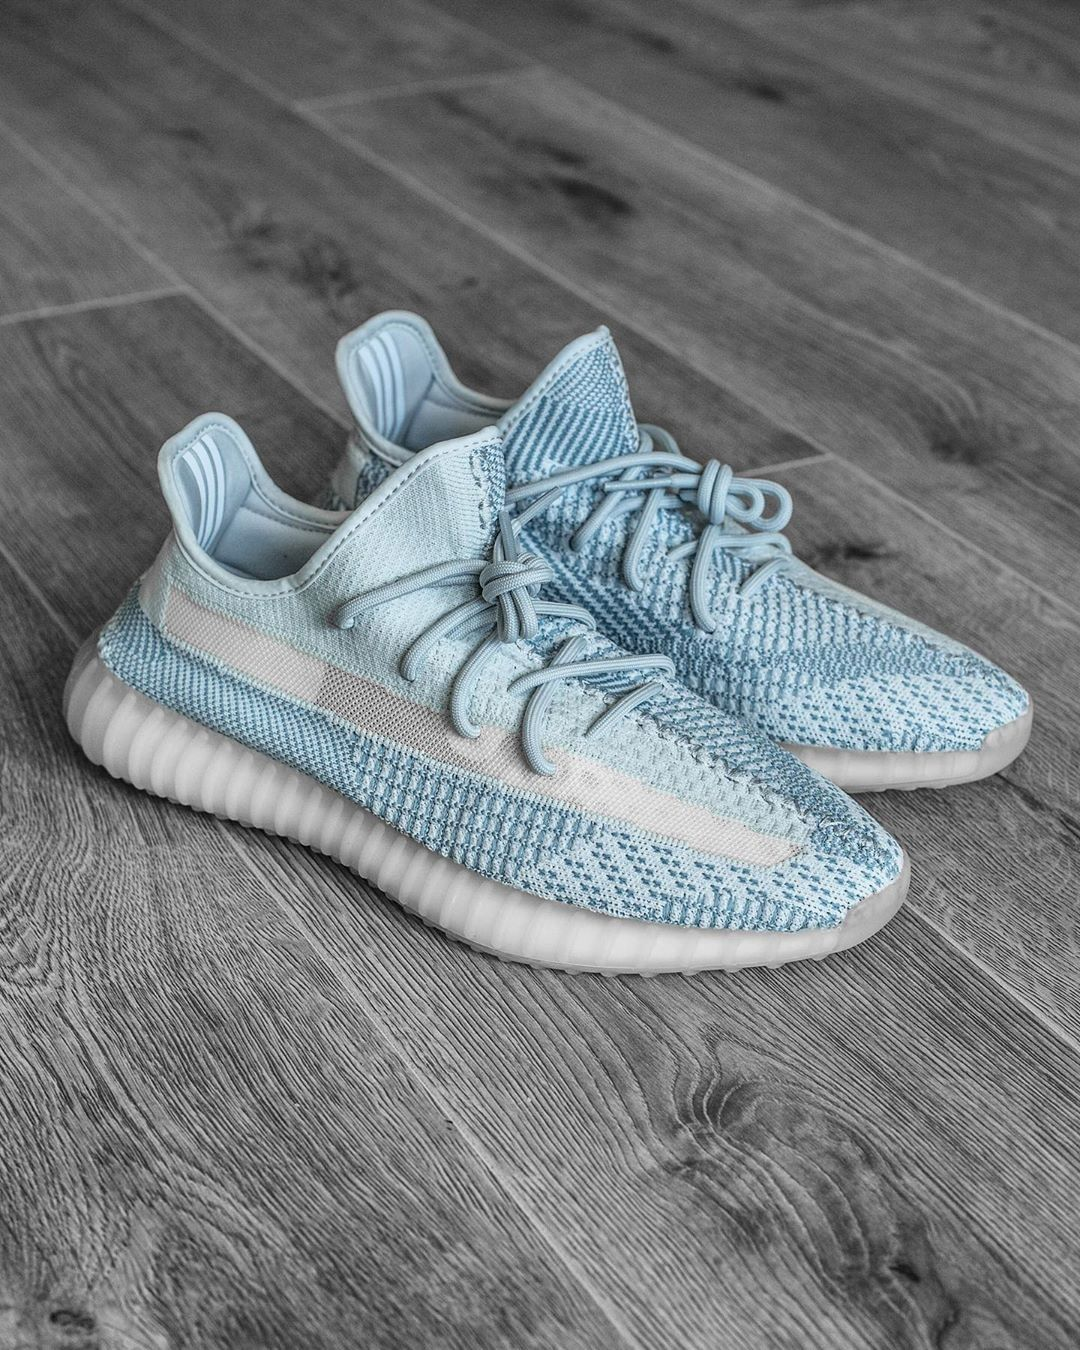 Yeezy Boost 350 V2 Cloud White (Non Reflective) en 2020